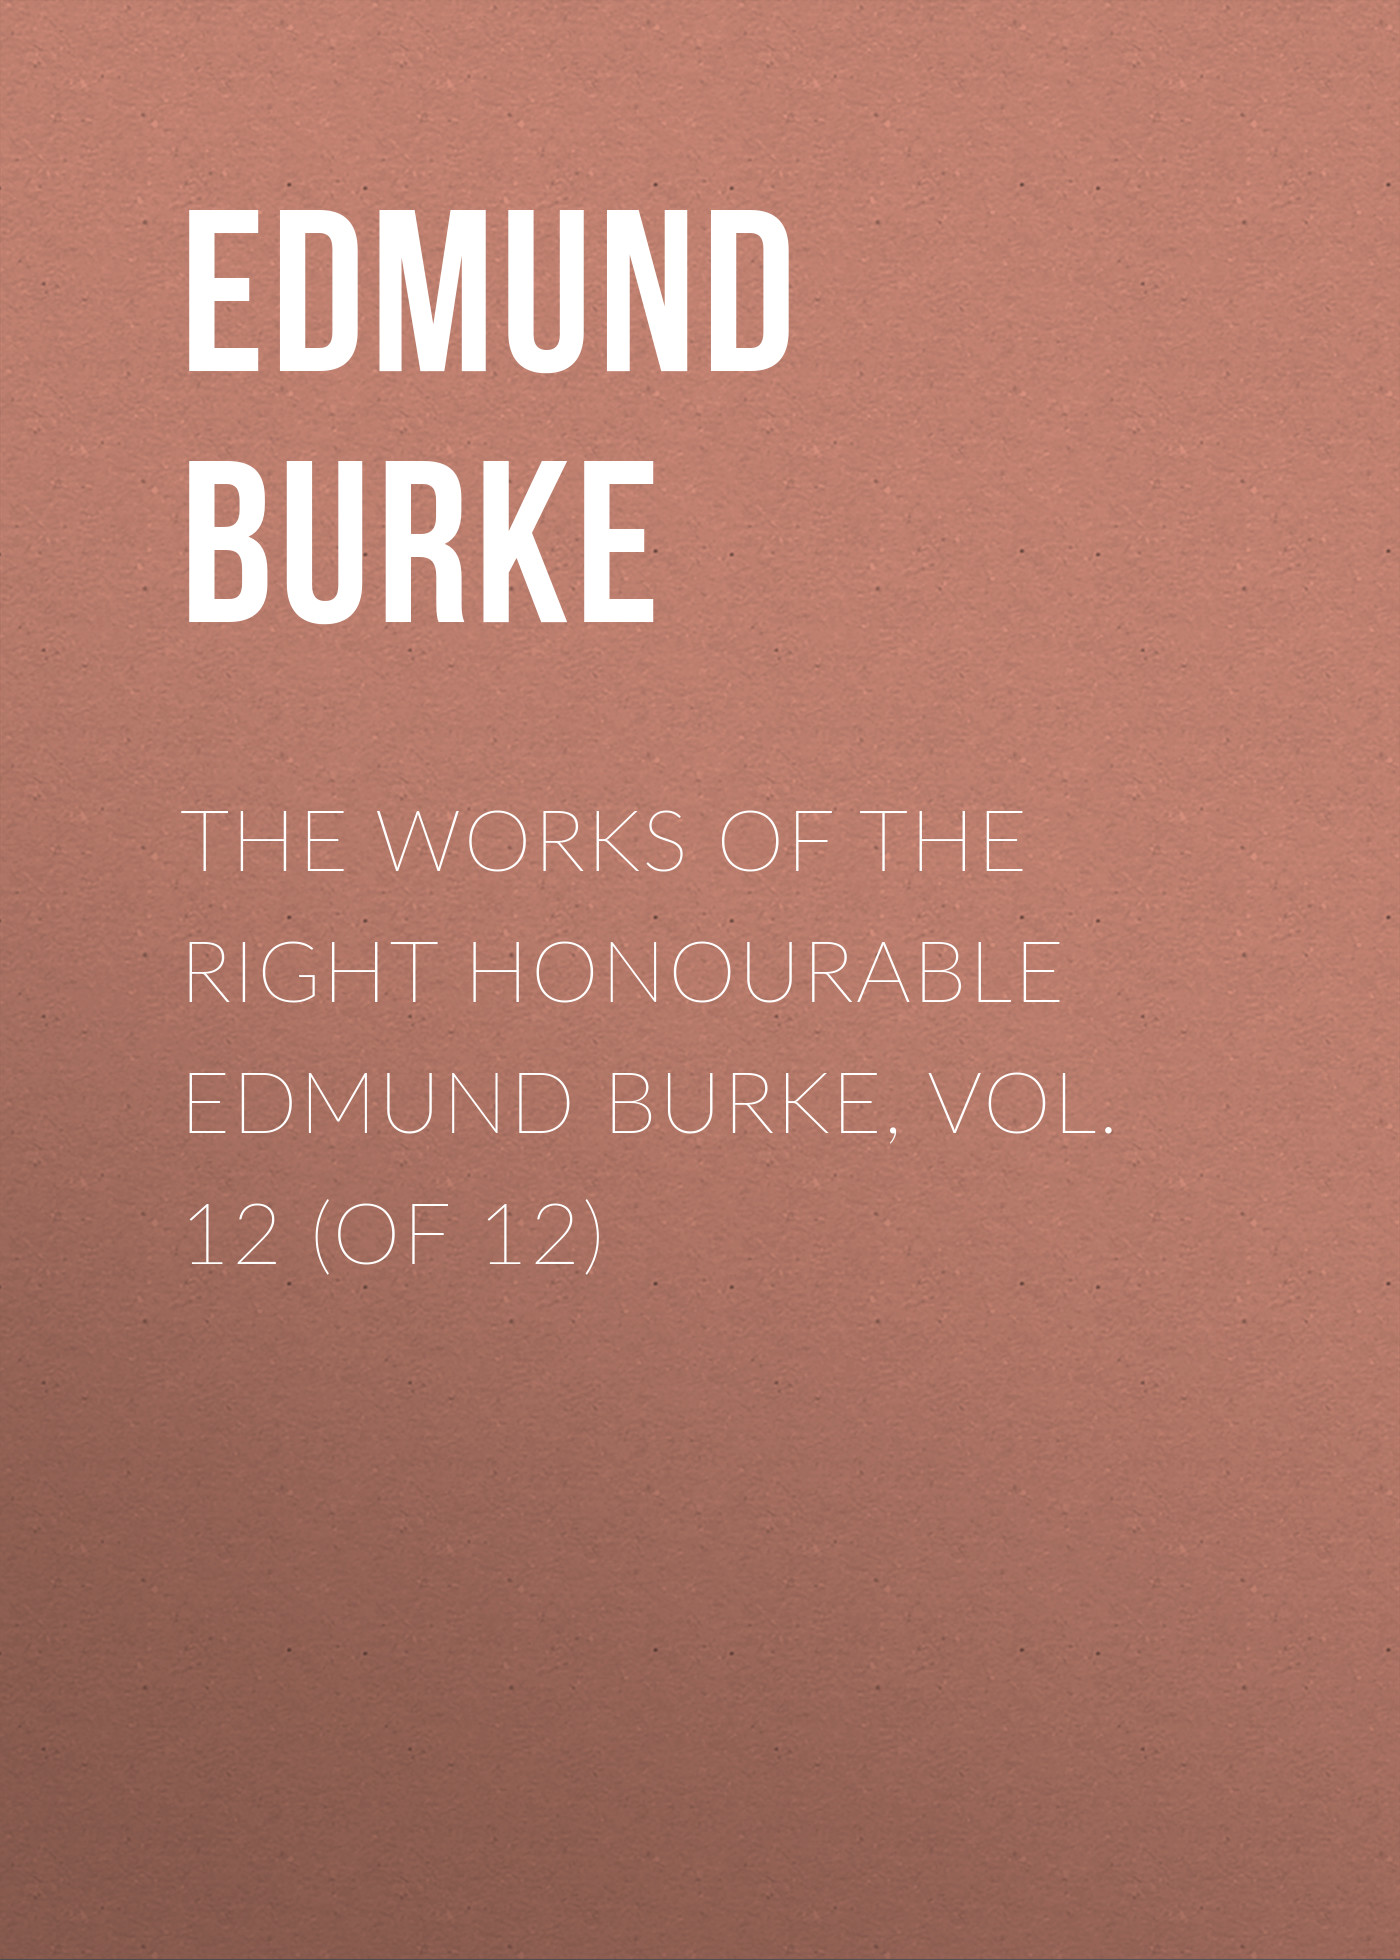 Edmund Burke The Works of the Right Honourable Edmund Burke, Vol. 12 (of 12) edmund burke the works of the right honourable edmund burke vol 12 of 12